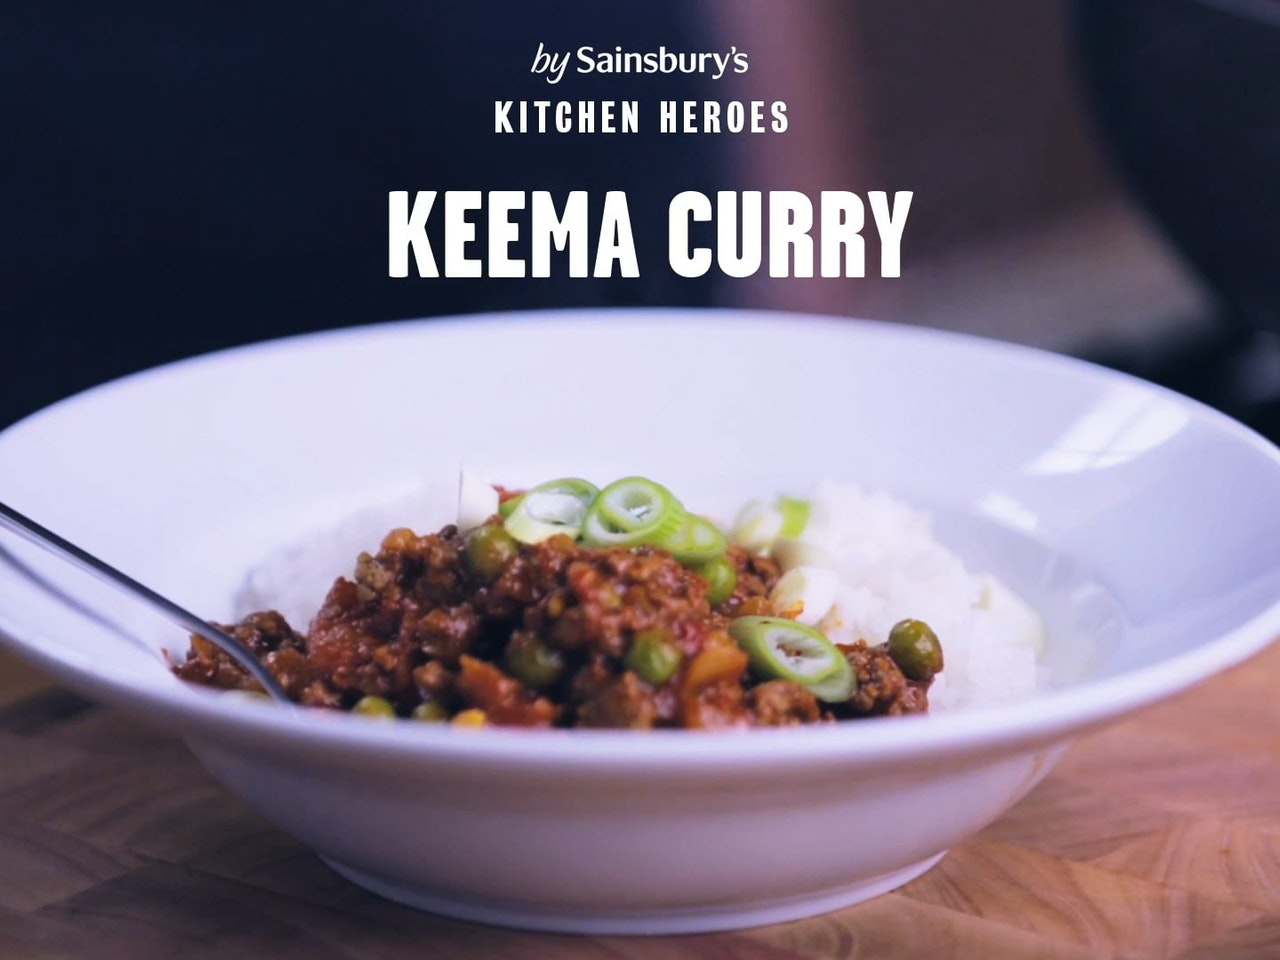 SAINSBURY'S: 'KEEMA CURRY'